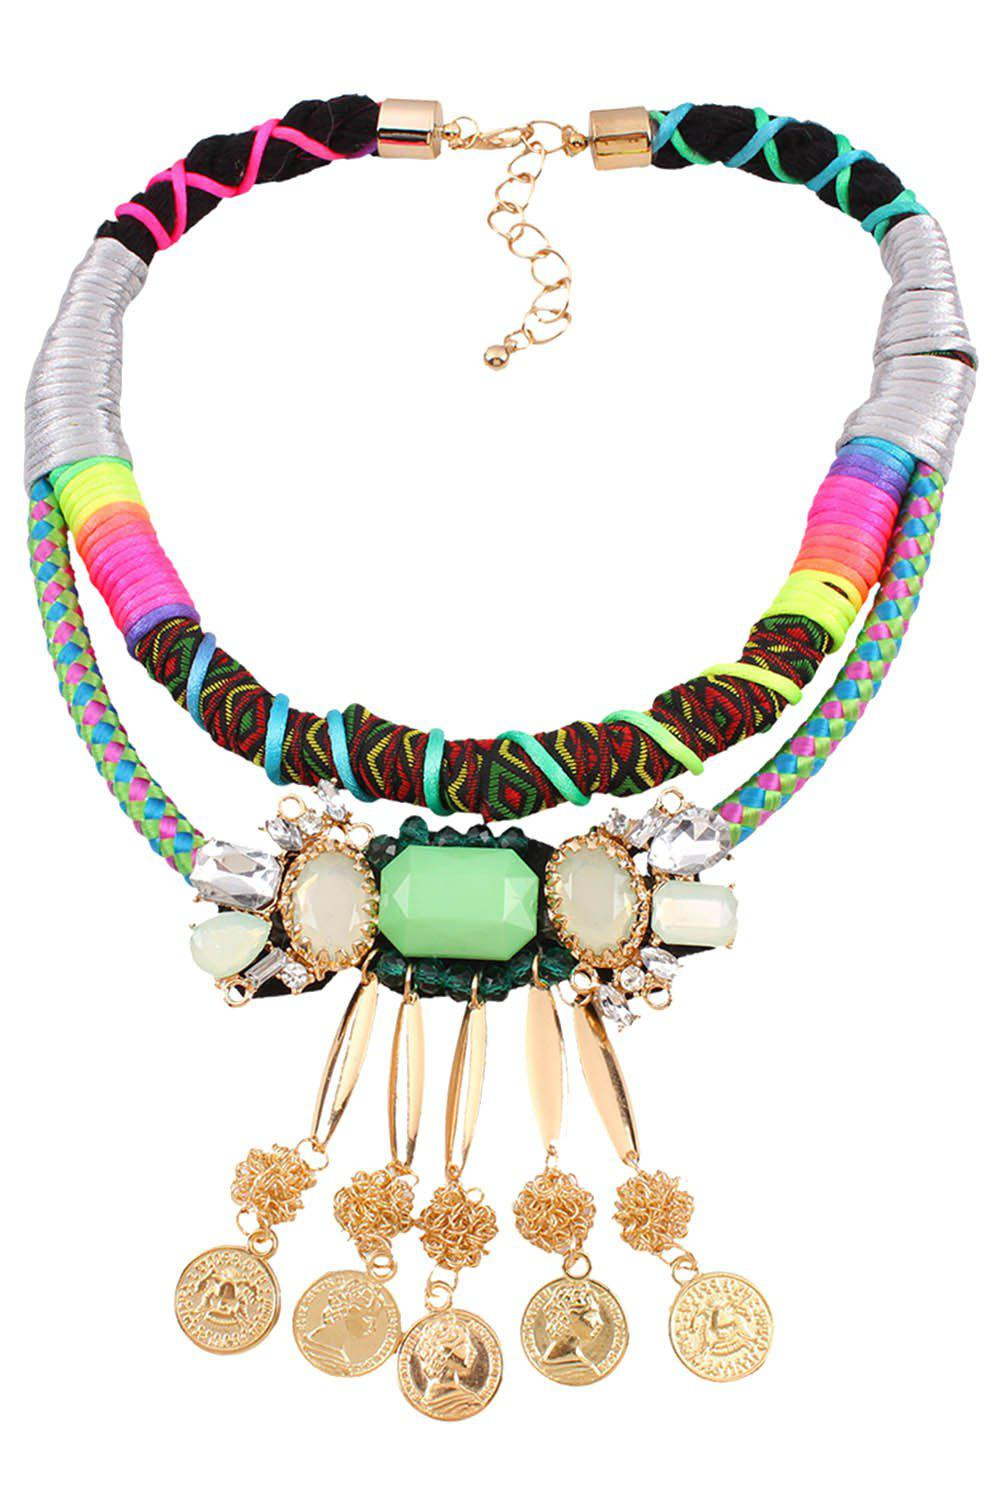 Ethnic Bohemia Multilayered Coin Fringed Necklace - COLORMIX